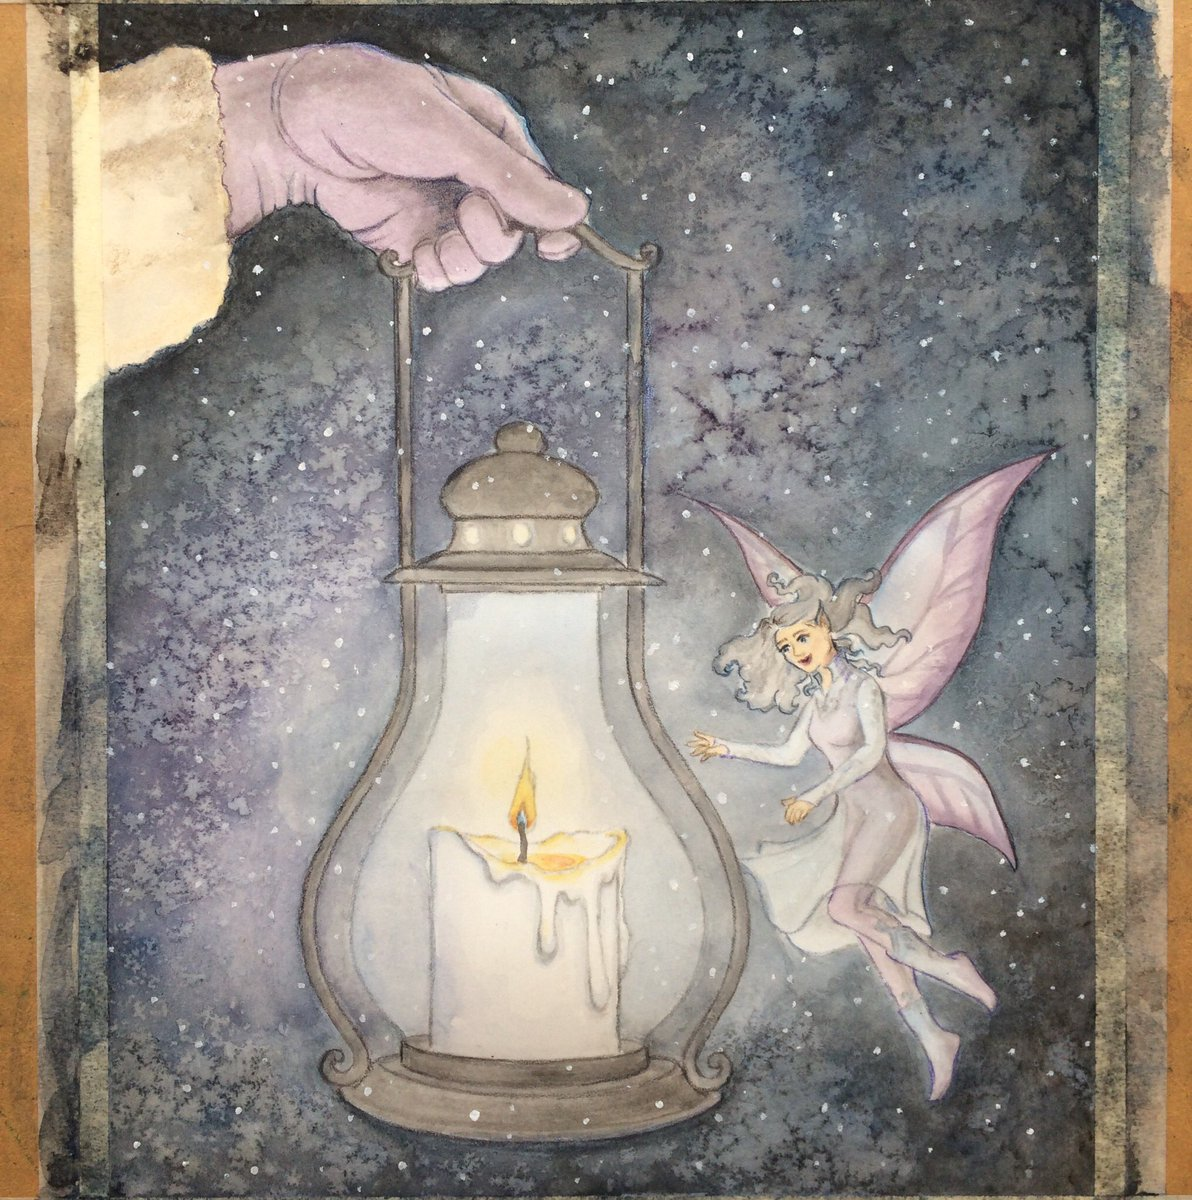 Laying down some coloured pencil today. Hoping to finish this one up by the end of tomorrow!  #colouredpencil #workinprogress #wip #coloredpencil #art #artist #fairy #night #candle #lantern #winter #watercolour #watercolor #ink #snow #snowy